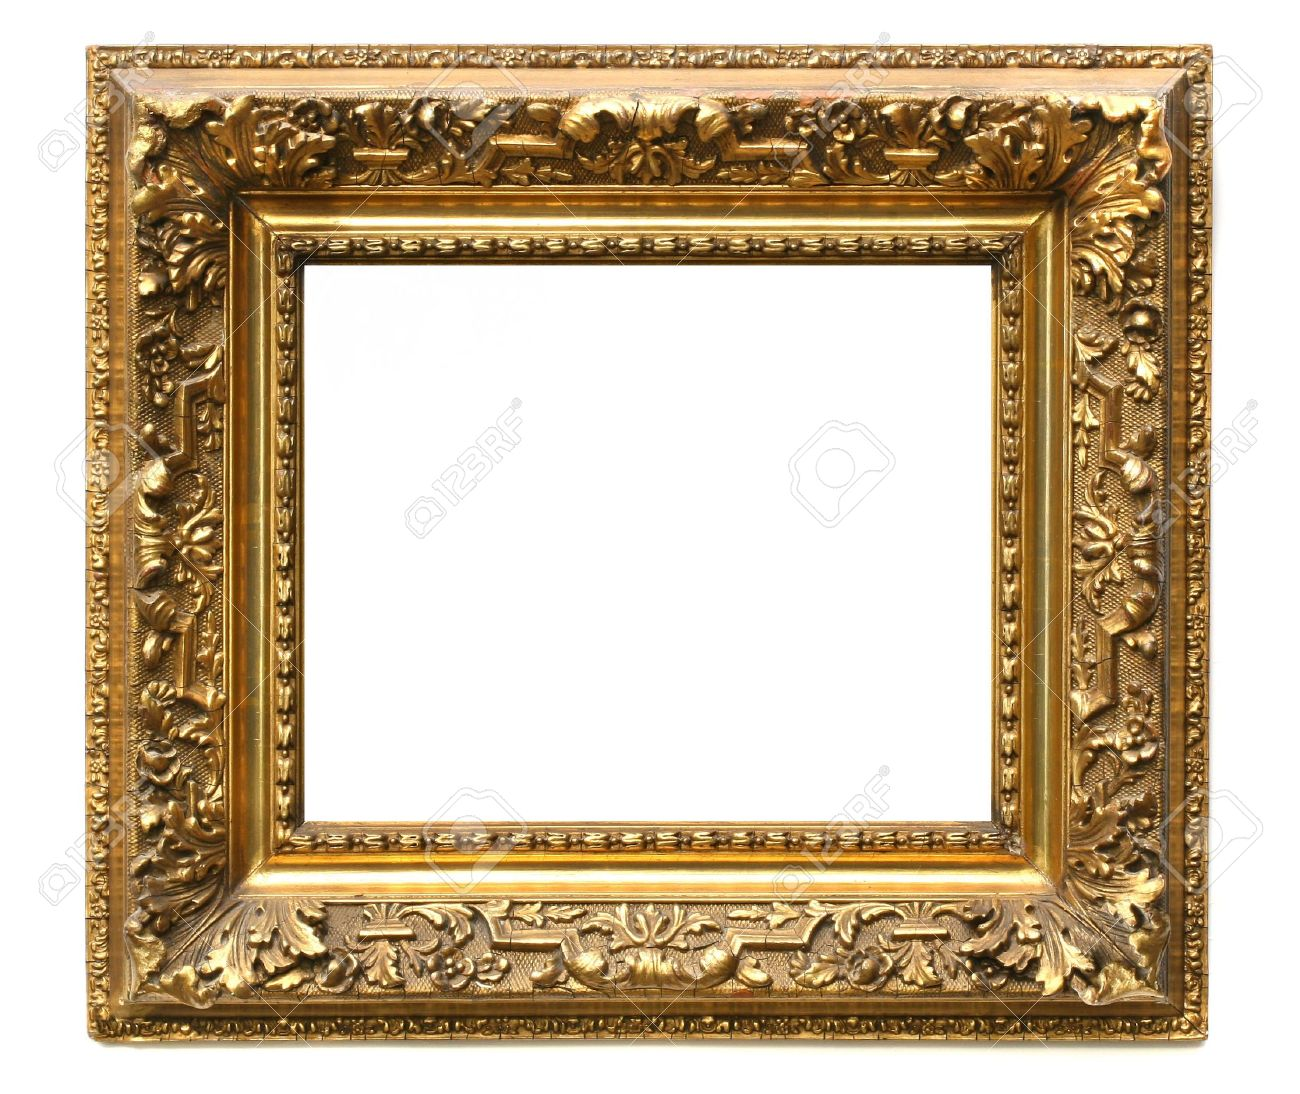 Old Cracked Gilded Frame On White Background Stock Photo, Picture ...